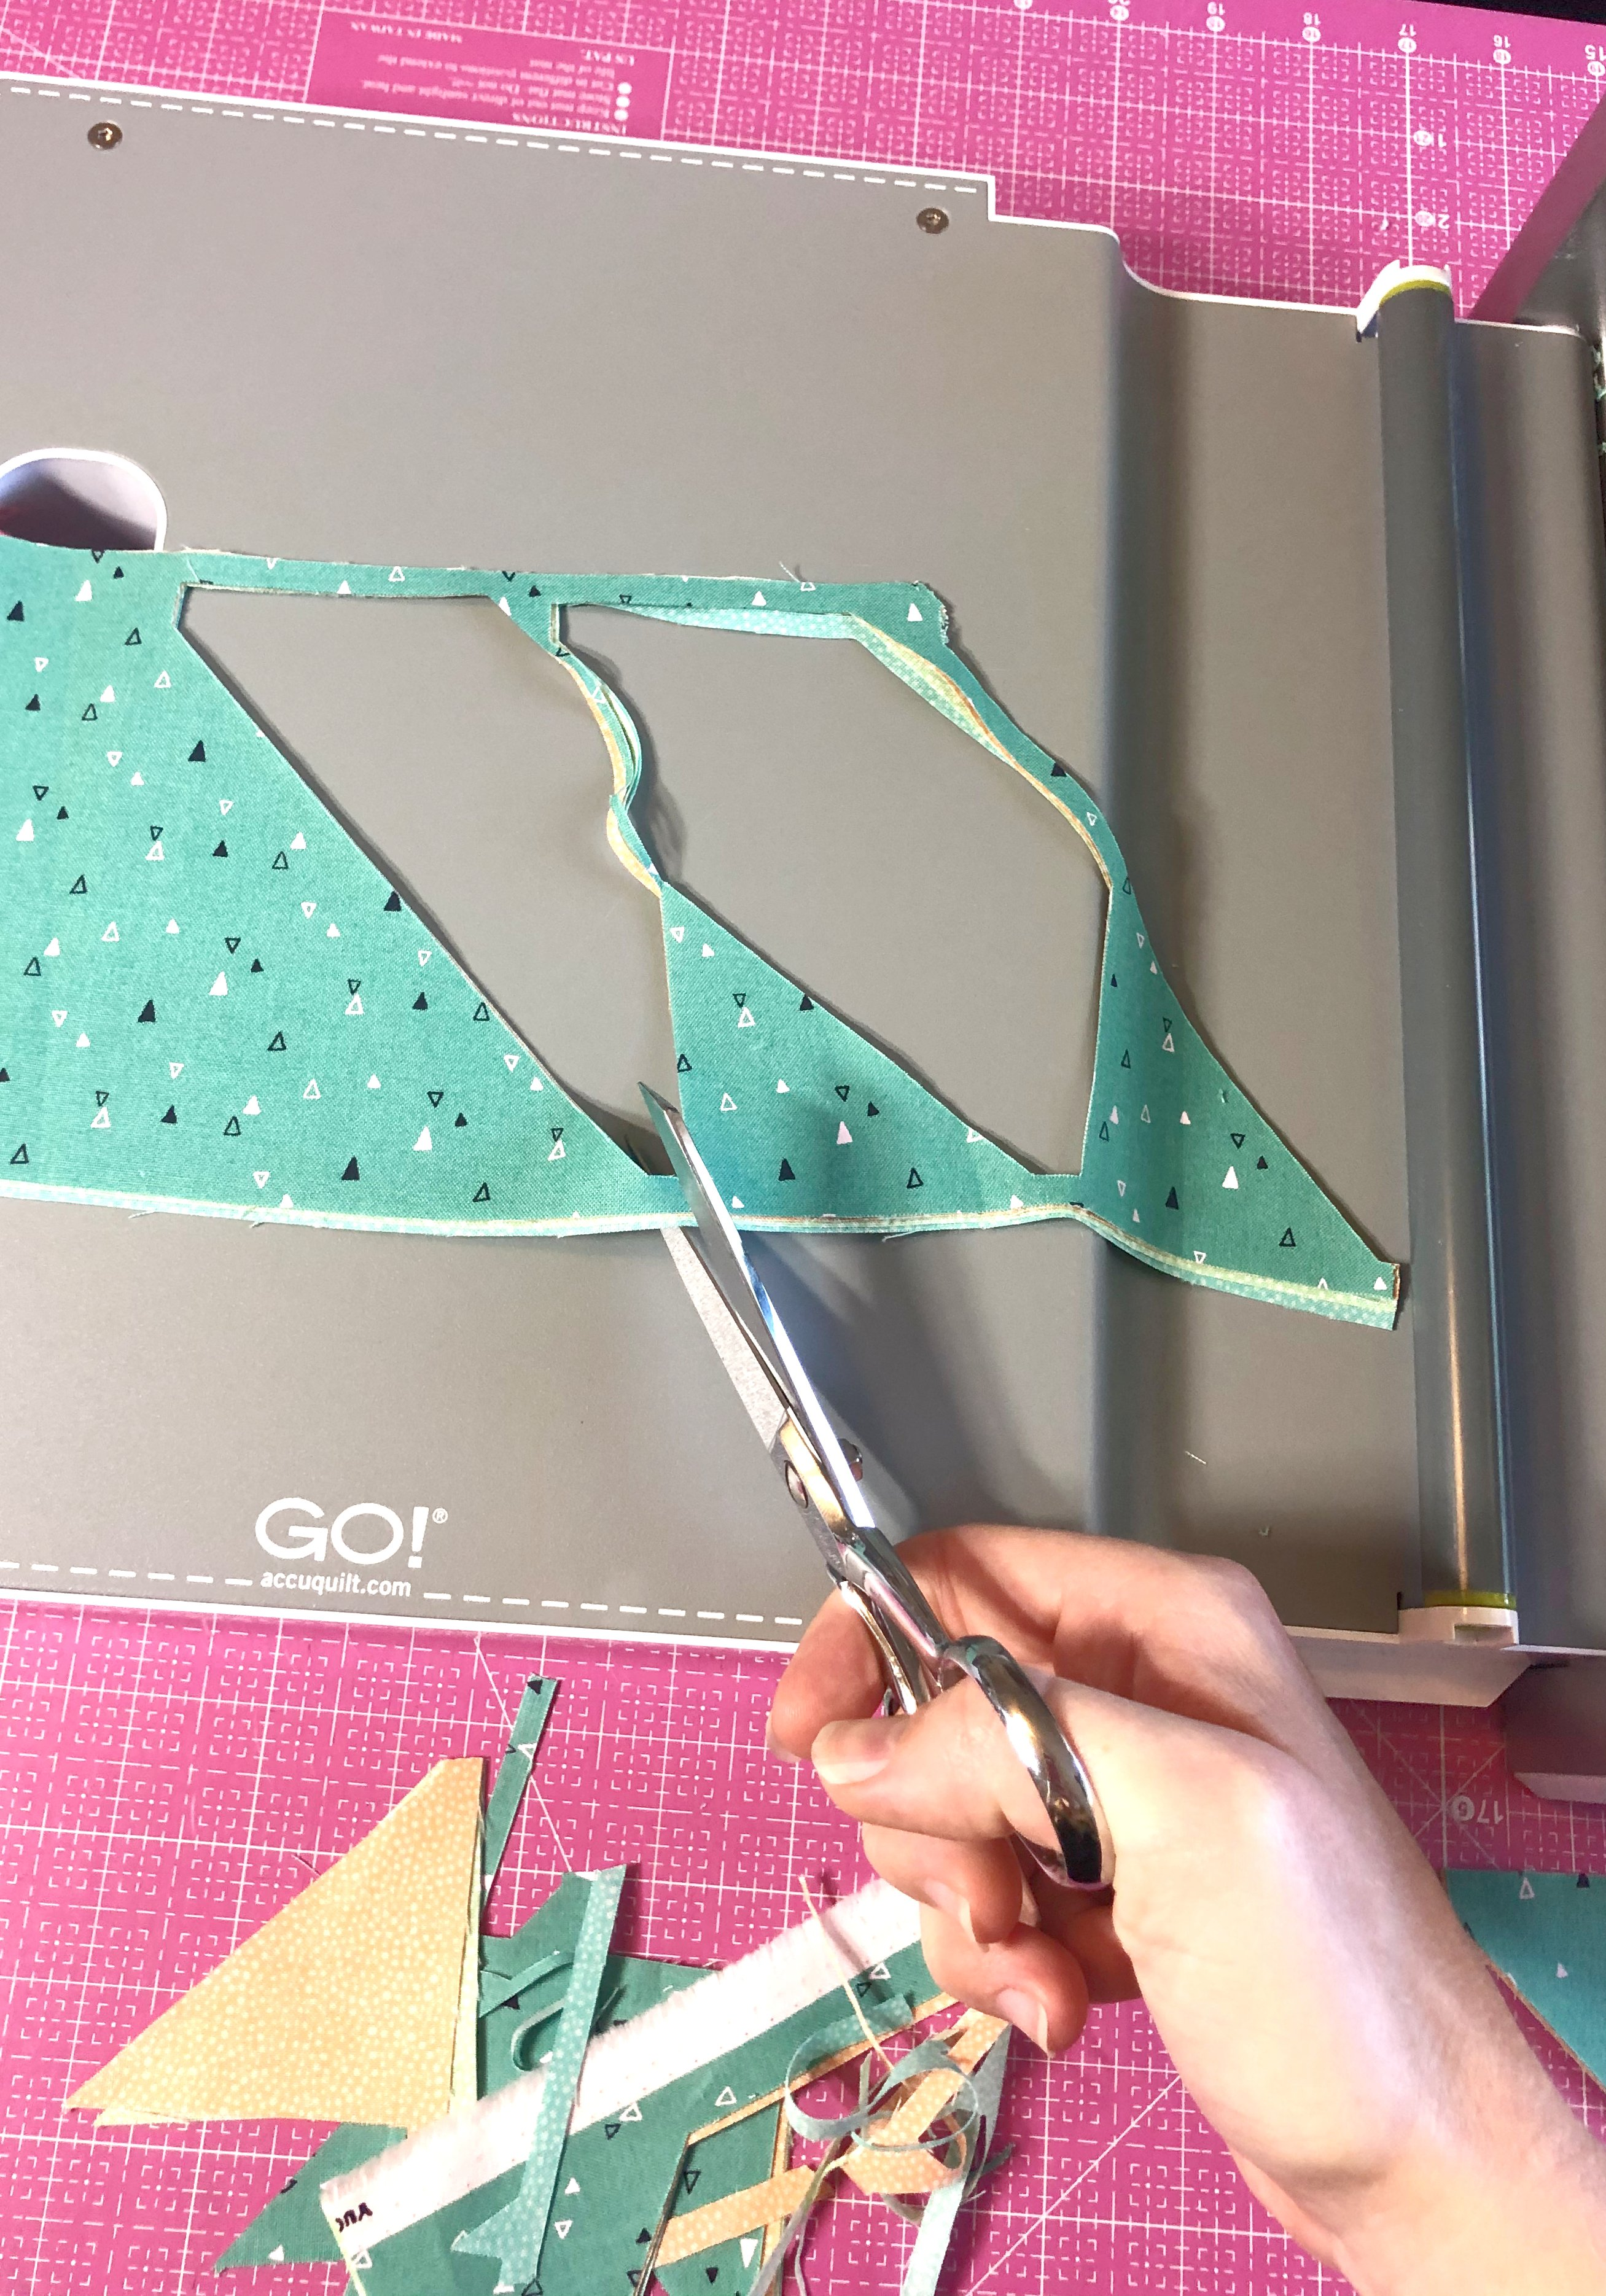 AccuQuilt_cut_and_shift_method